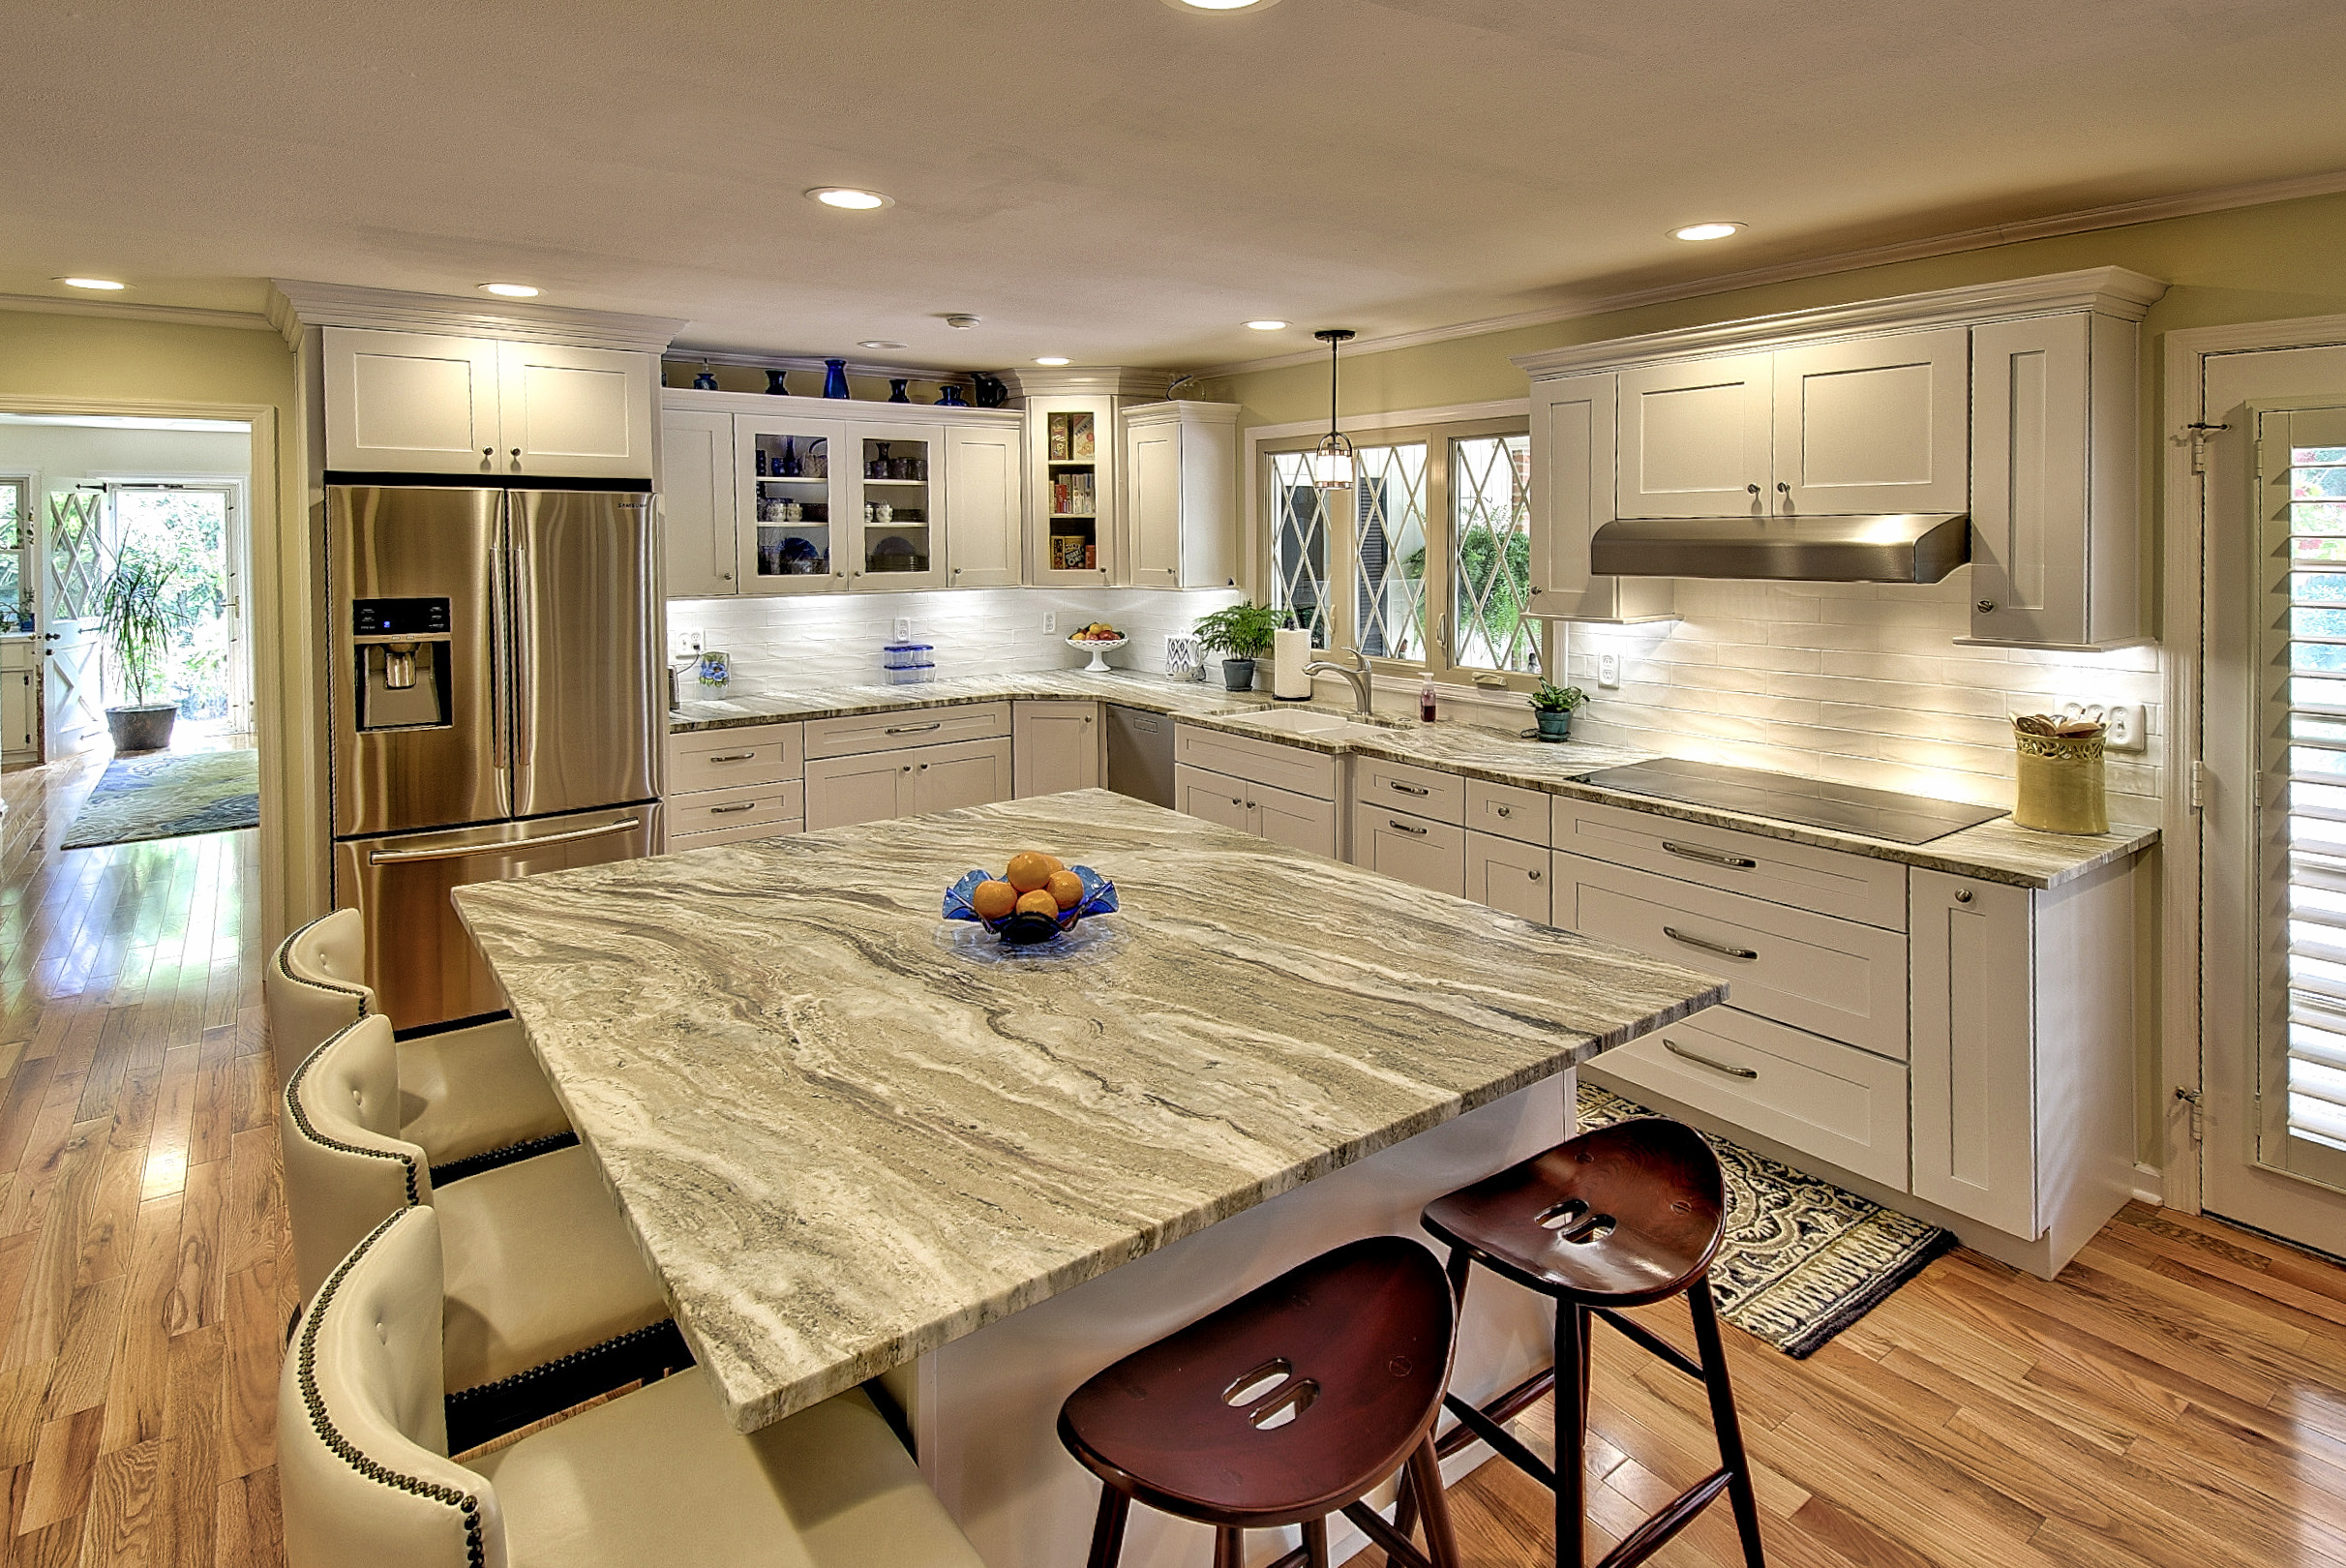 Johnson City Cabinet Retailer - Kitchens By Design